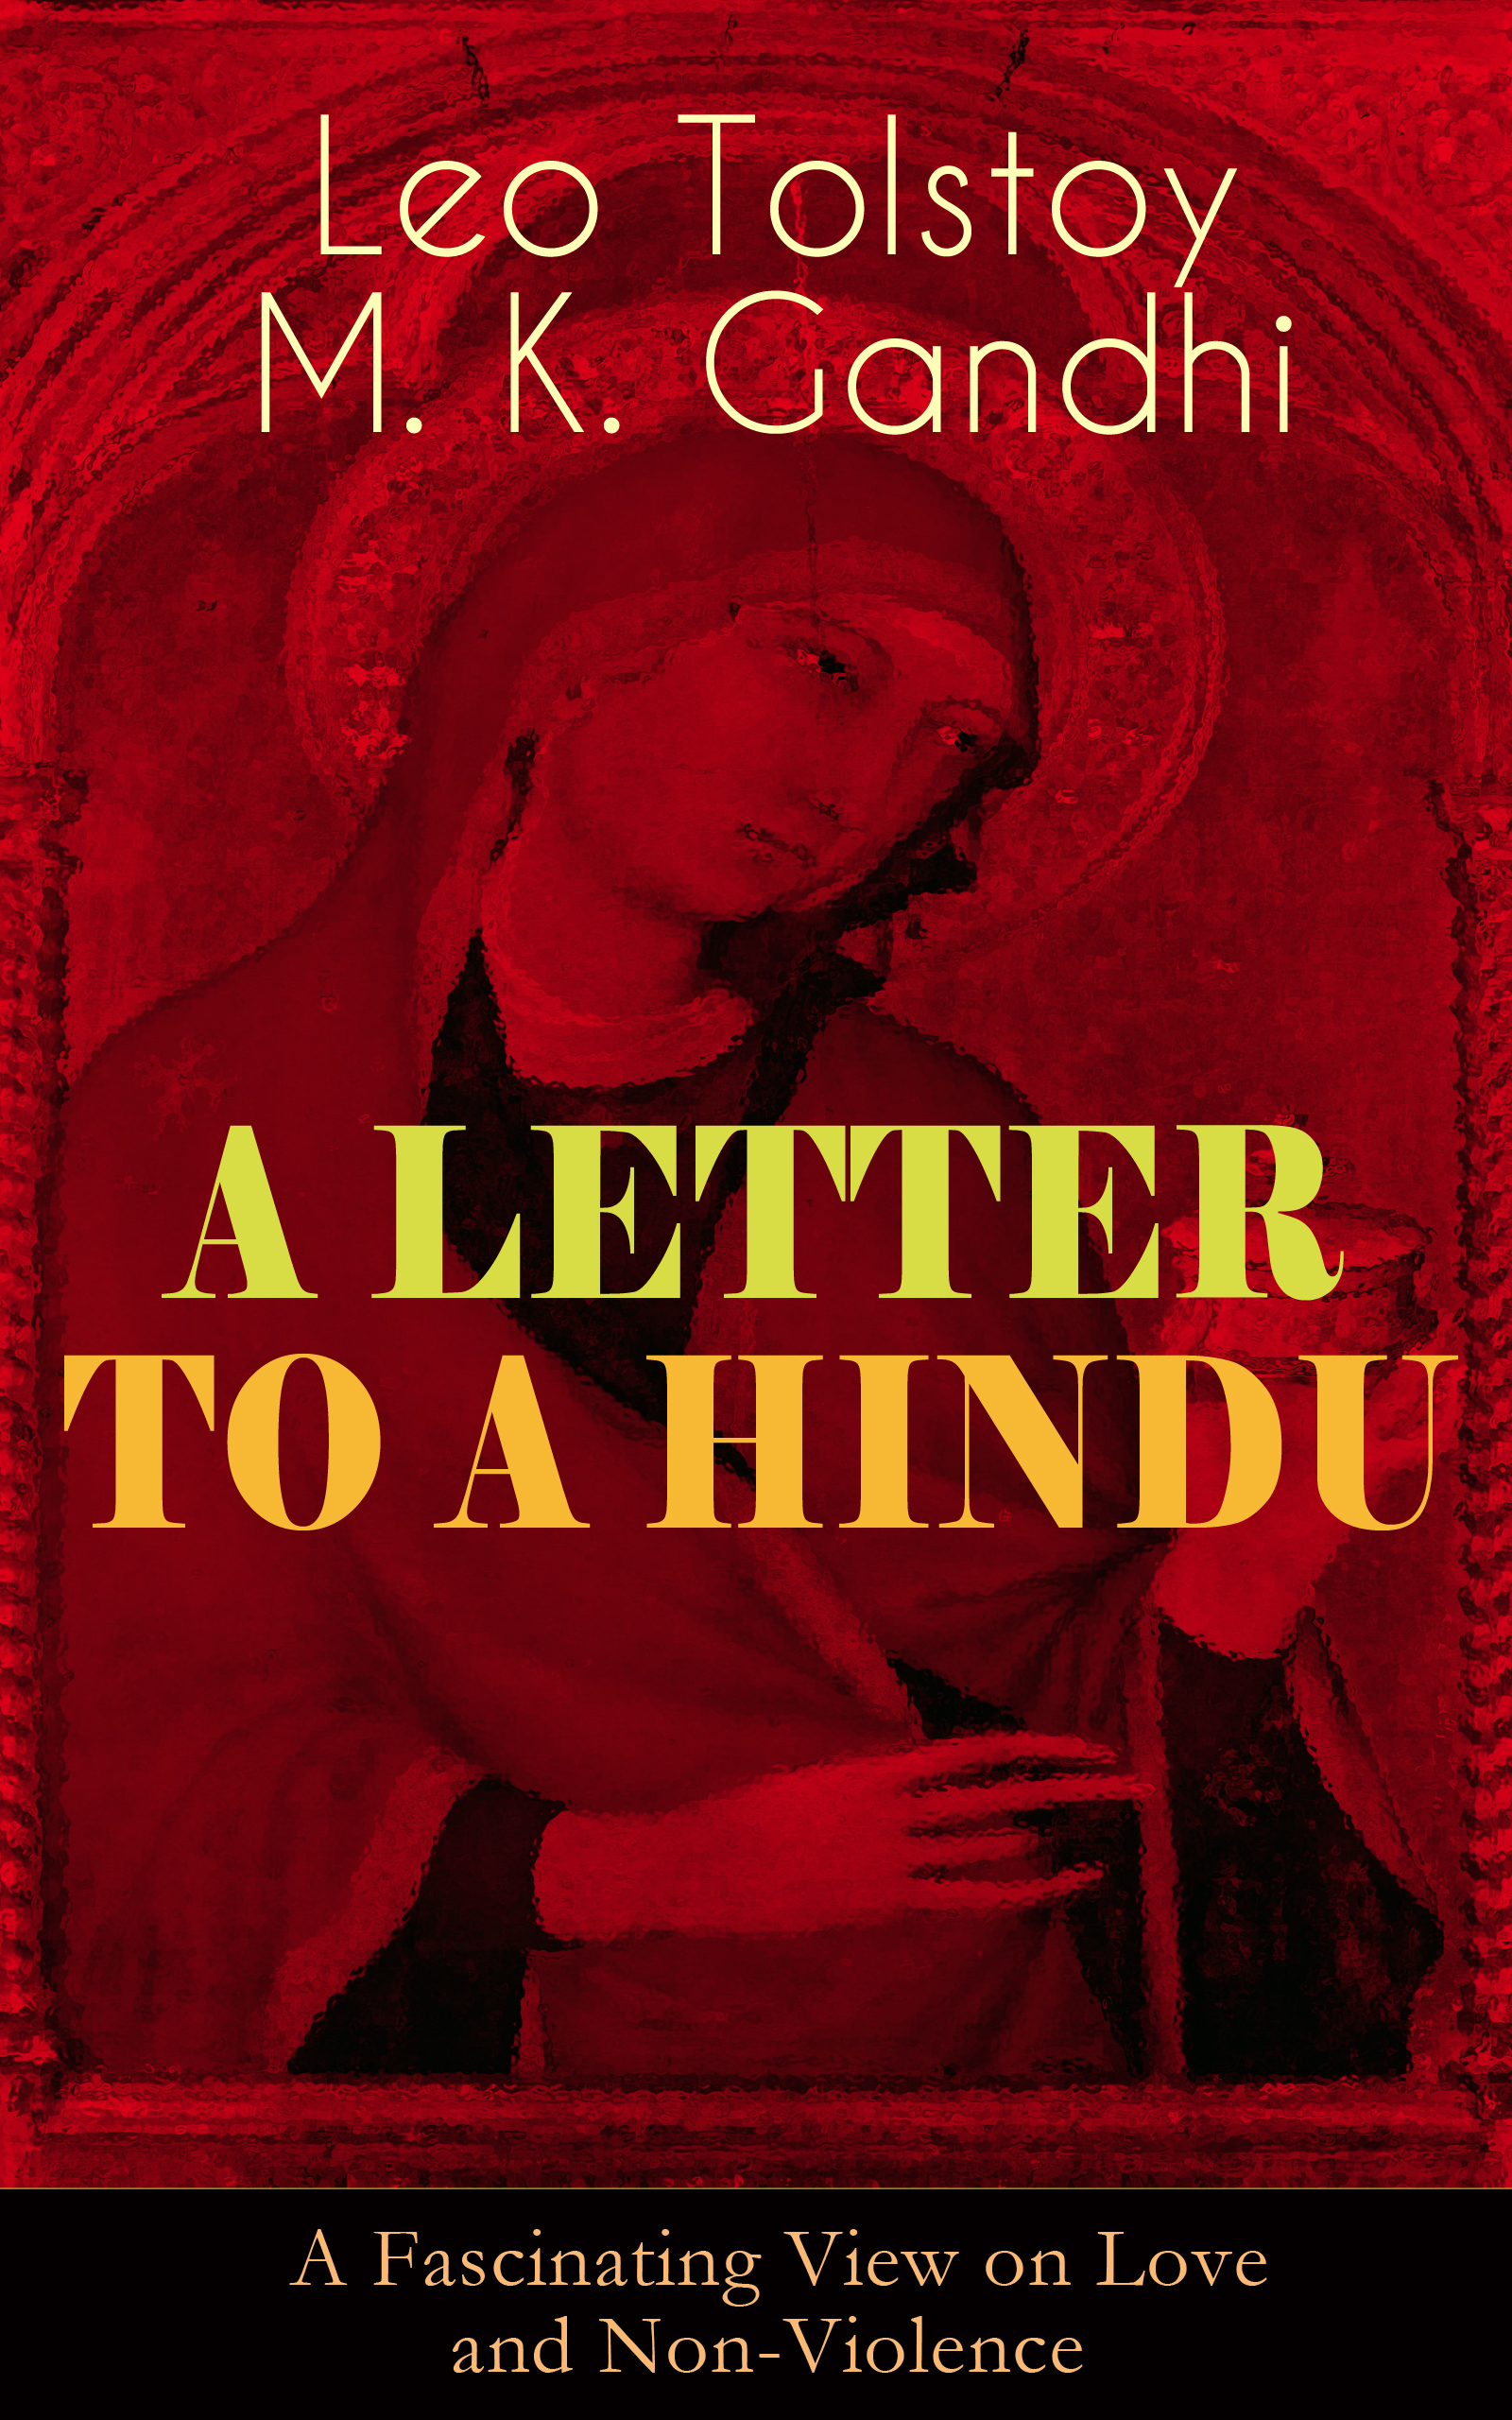 Leo Tolstoy A LETTER TO A HINDU (A Fascinating View on Love and Non-Violence) цена 2017